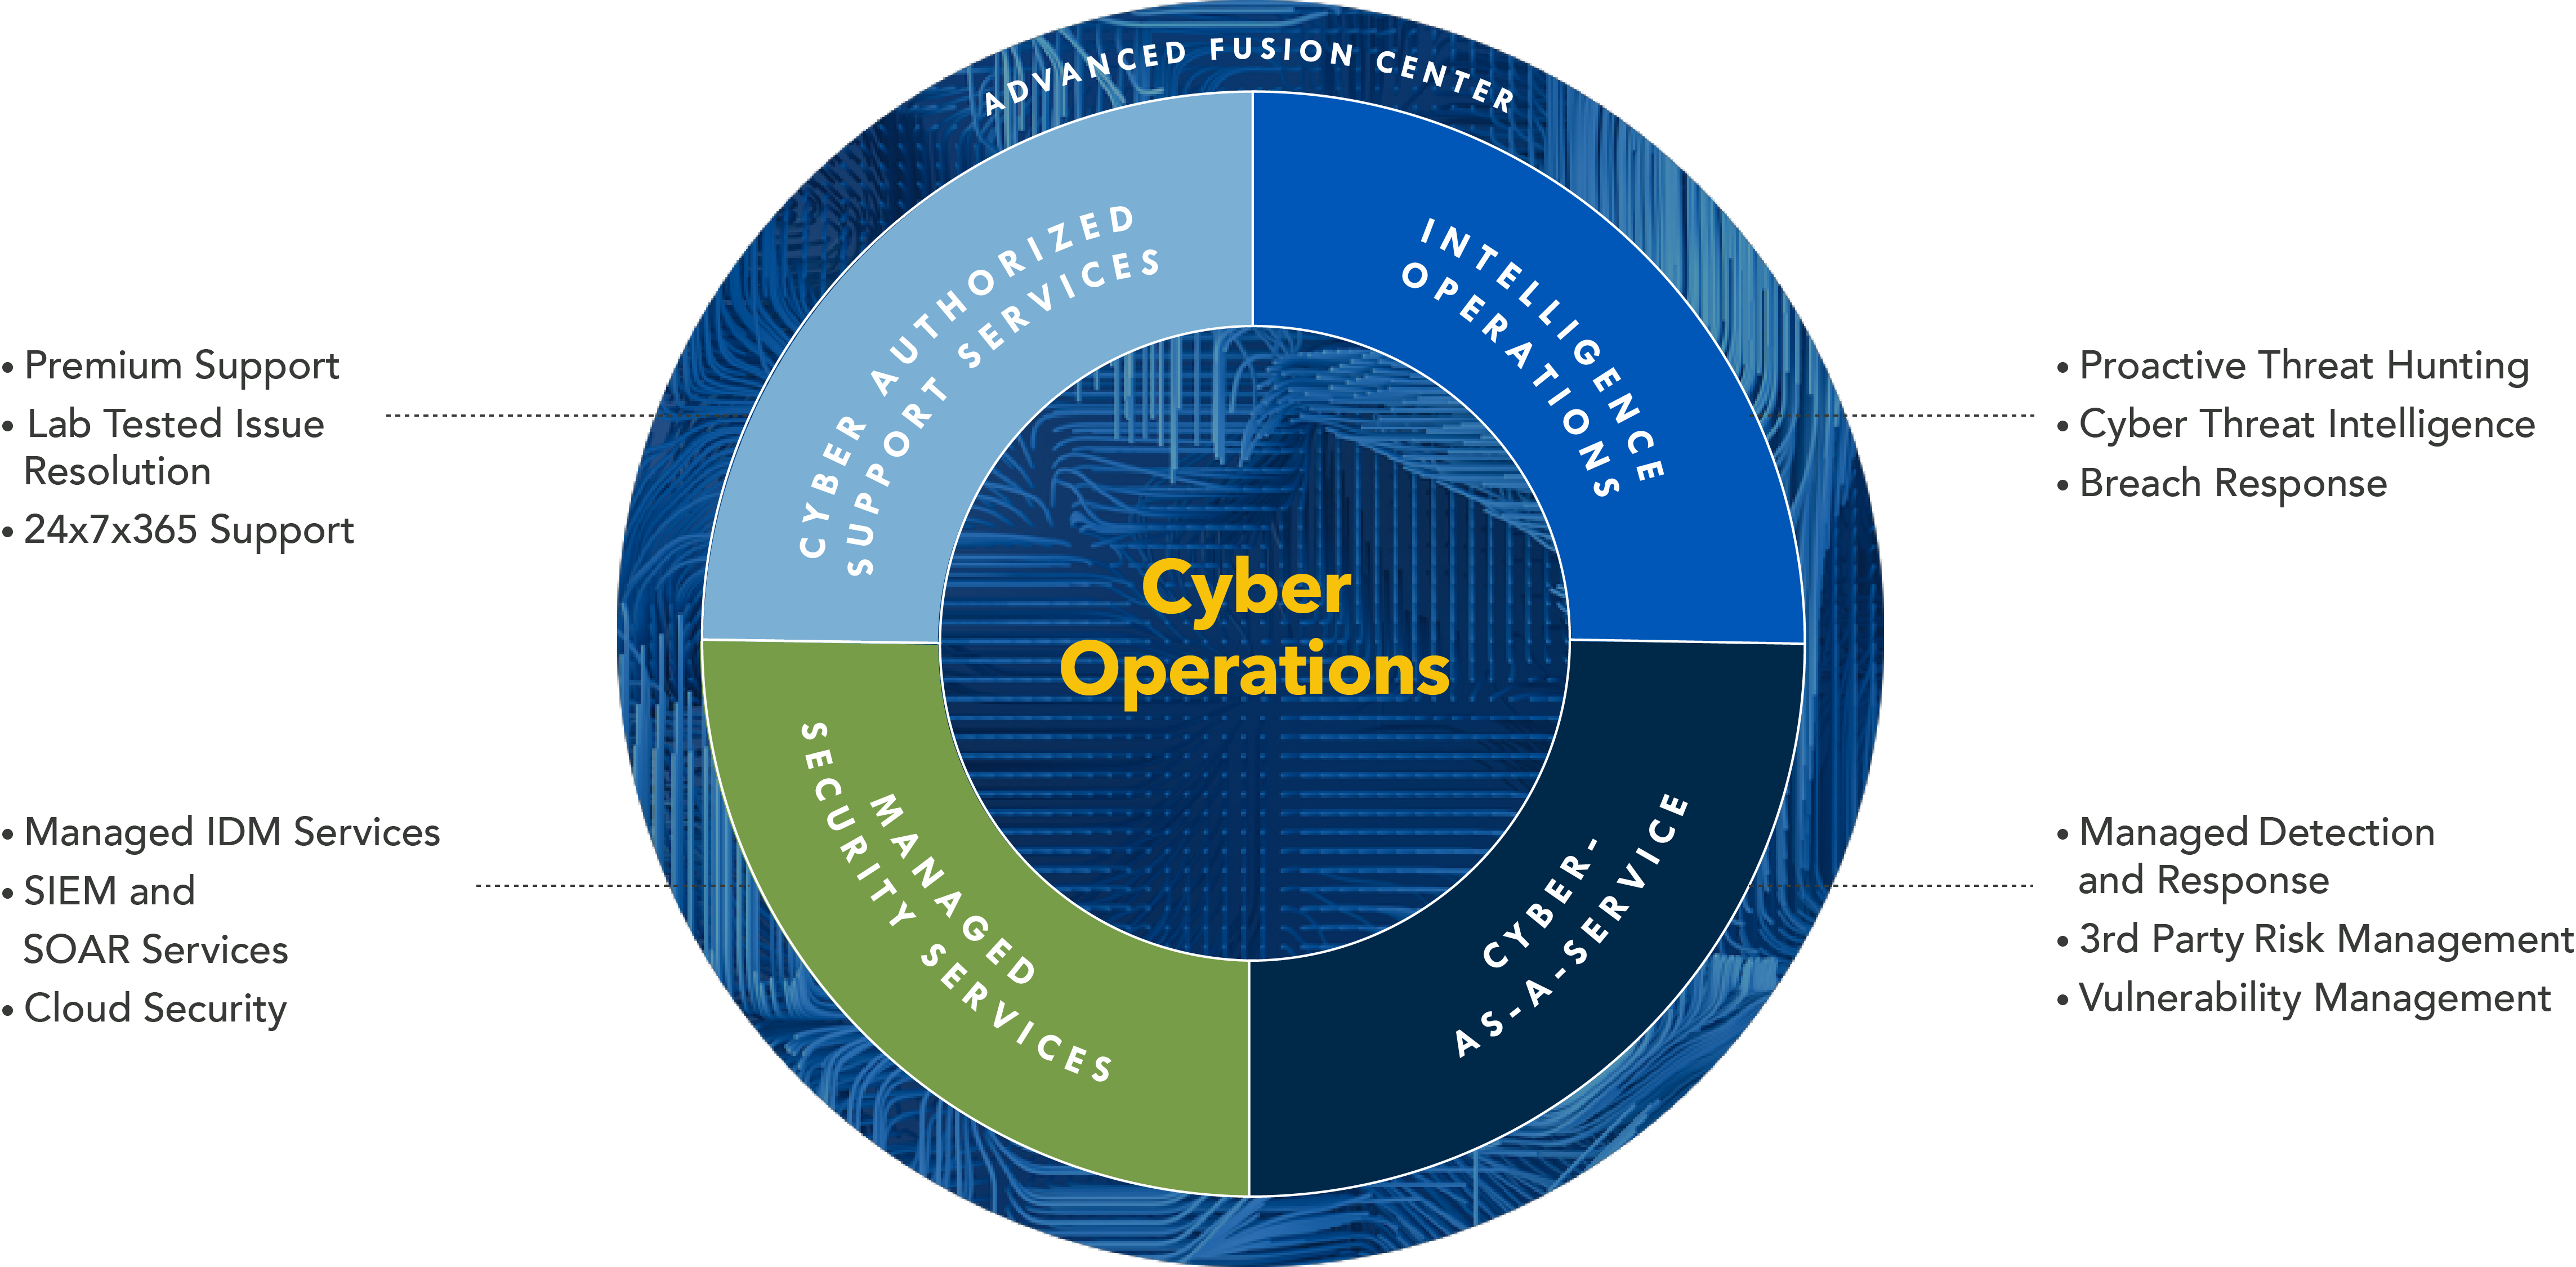 Cyber Operations Diagram